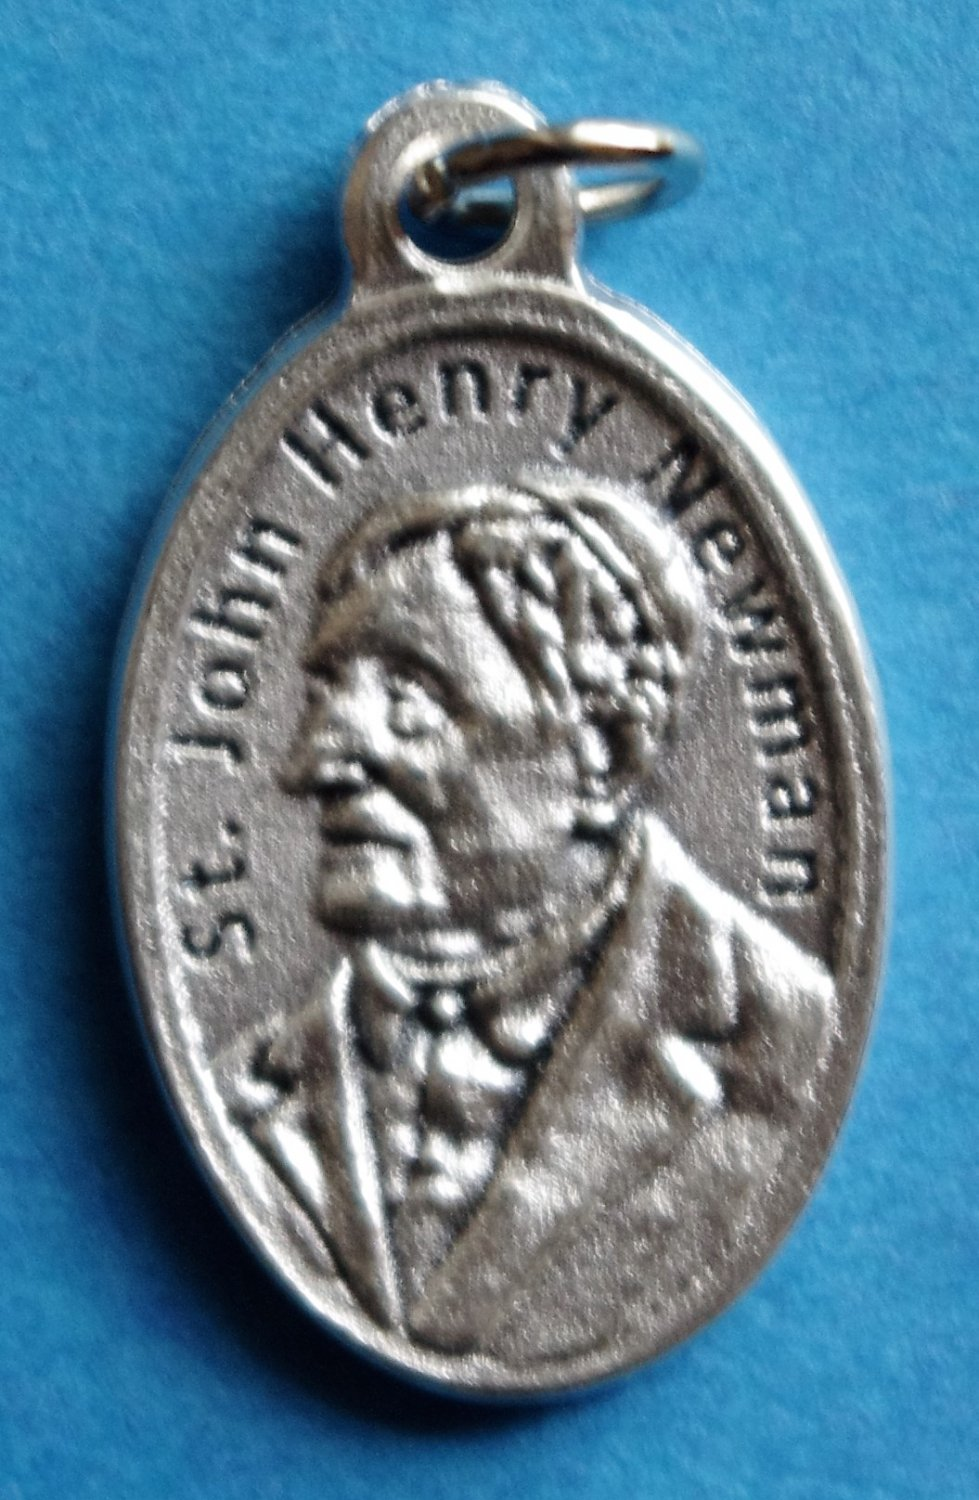 Special Ltd Ed Collector's Series Commemorative Cardinal John Henry Newman Canonization Medal M-1010